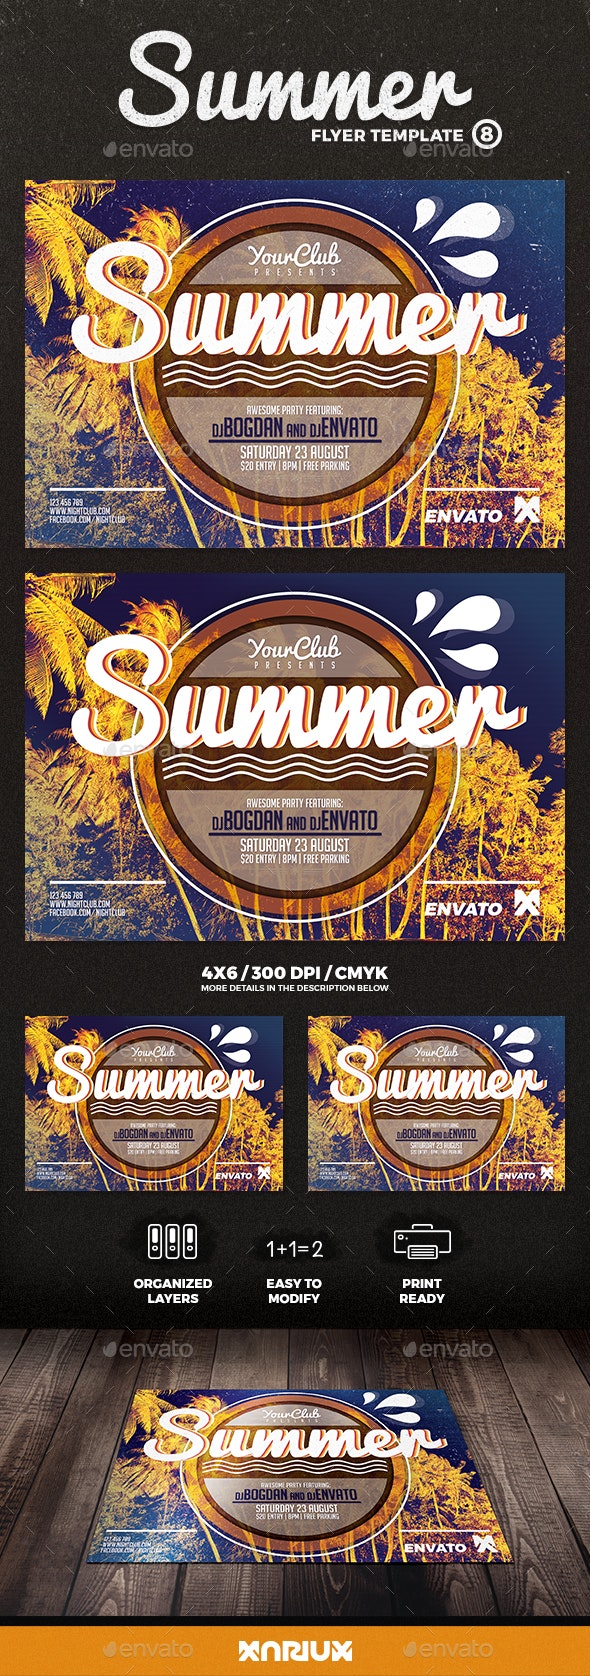 Summer Flyer 8 - Clubs & Parties Events